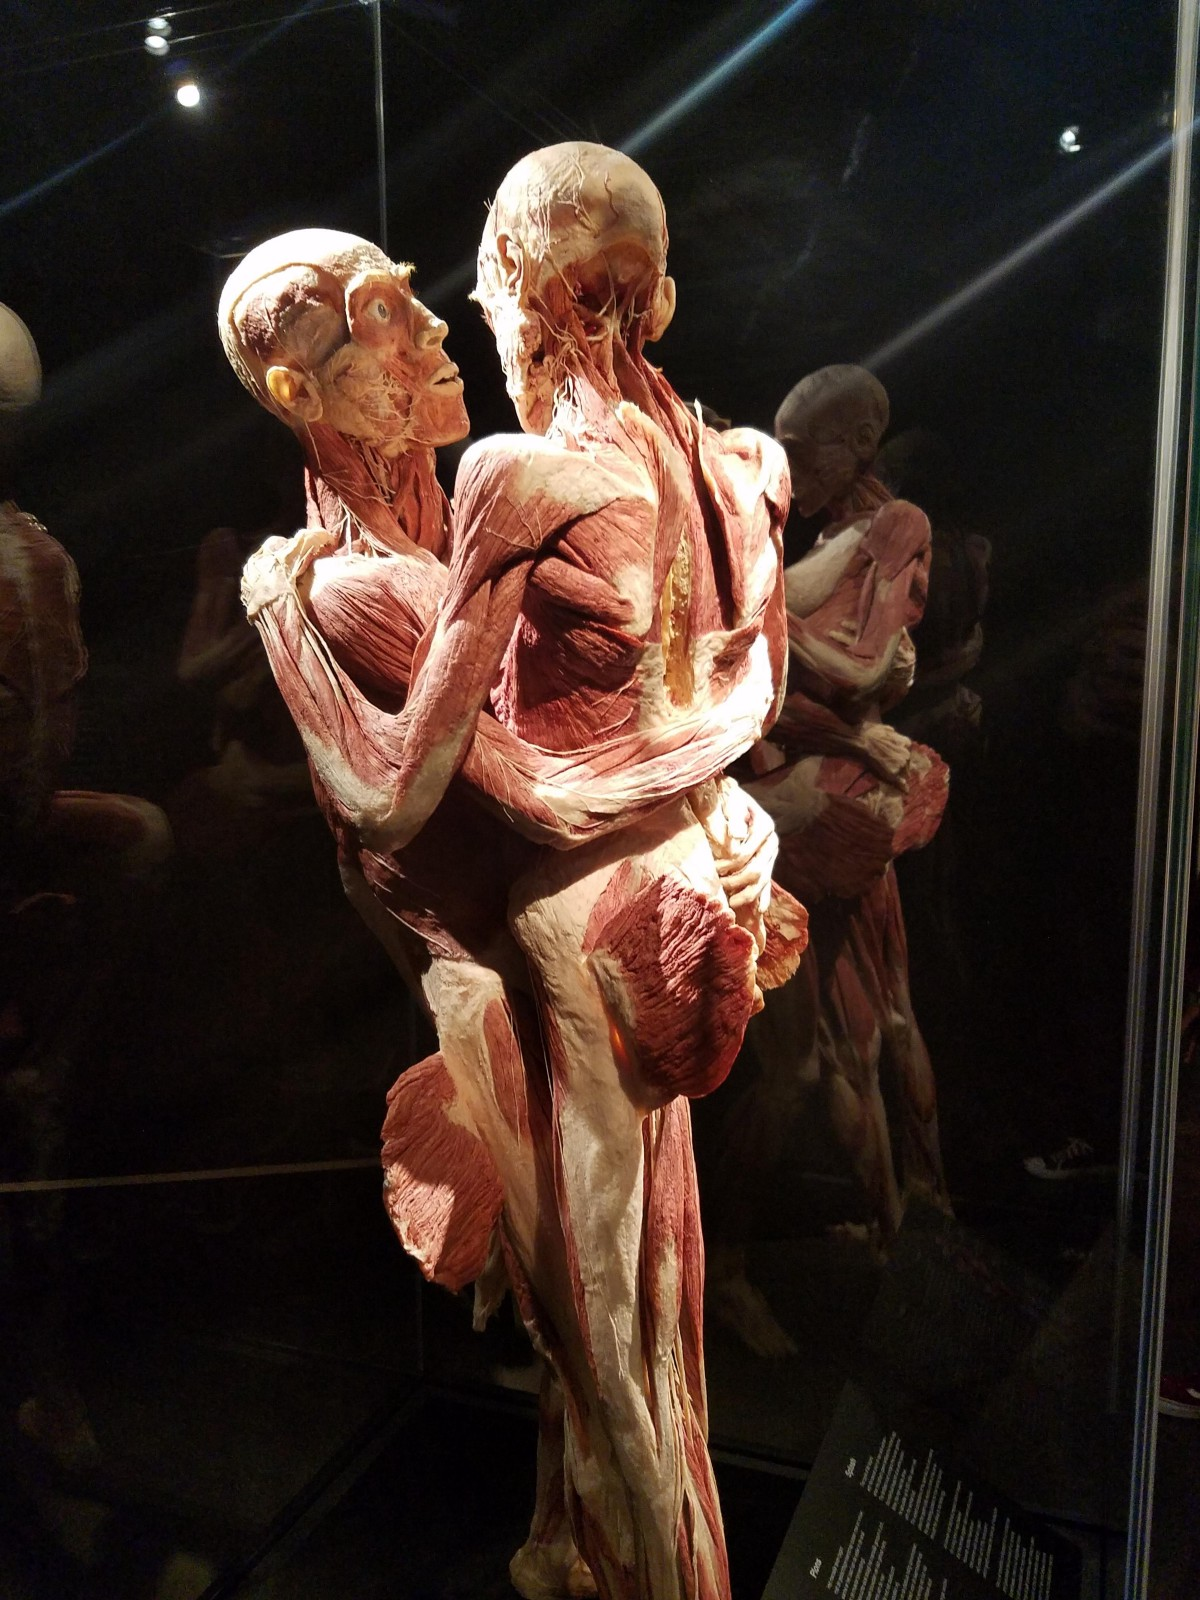 The Unhealthy Anatomy Of Body Worlds - Jerry Wu